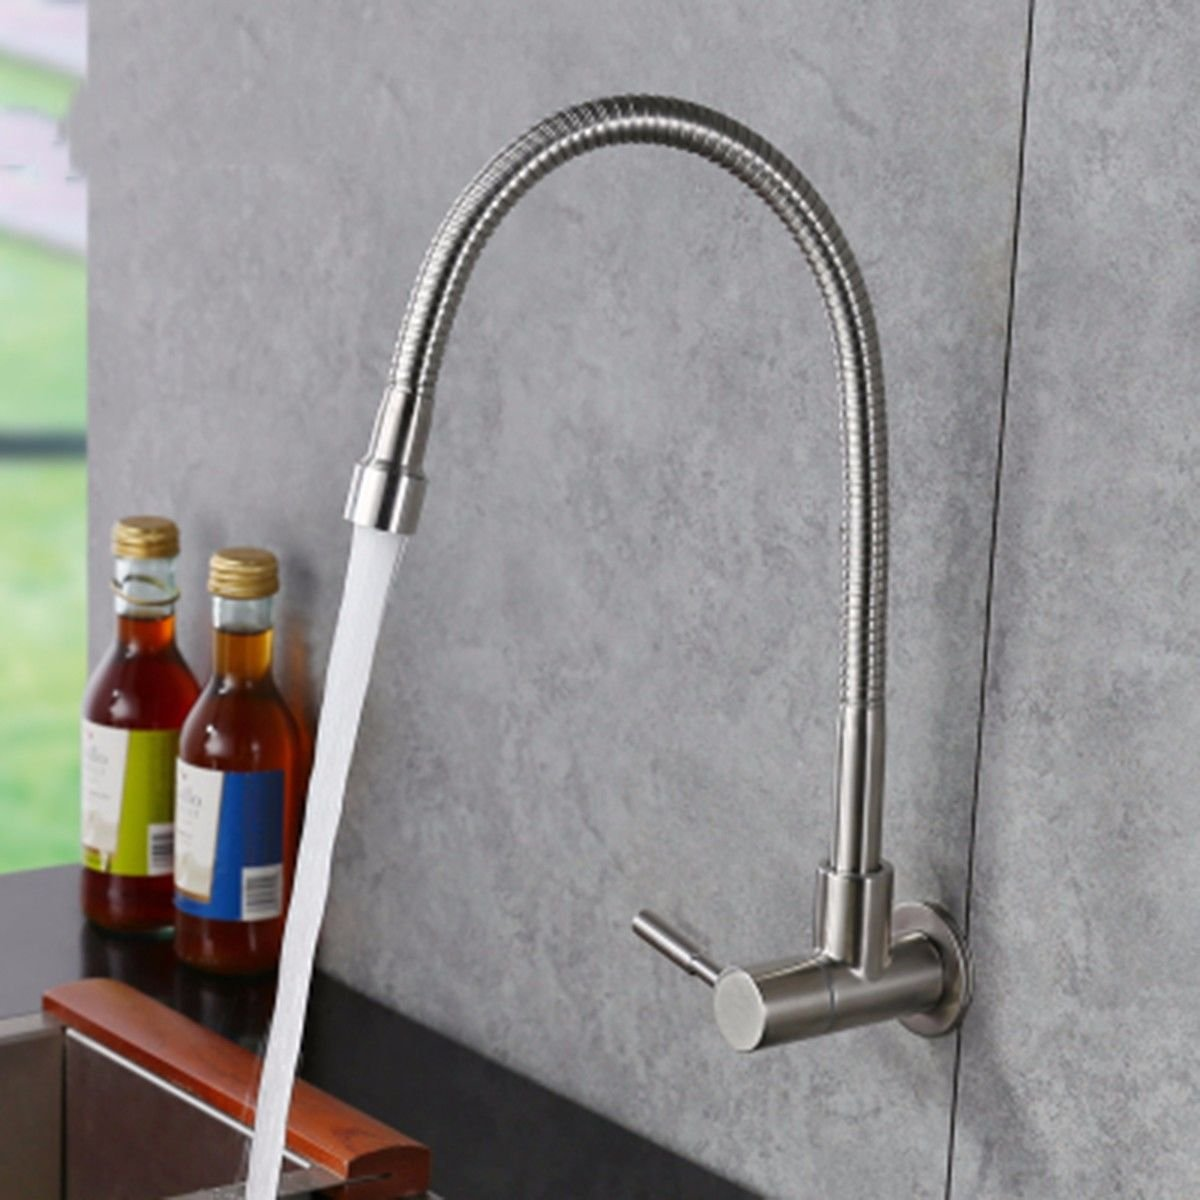 A Hlluya Professional Sink Mixer Tap Kitchen Faucet Stainless steel in the wall of the single cold balcony laundry pool and the pool kitchen washing dishes 盆 shower faucet,